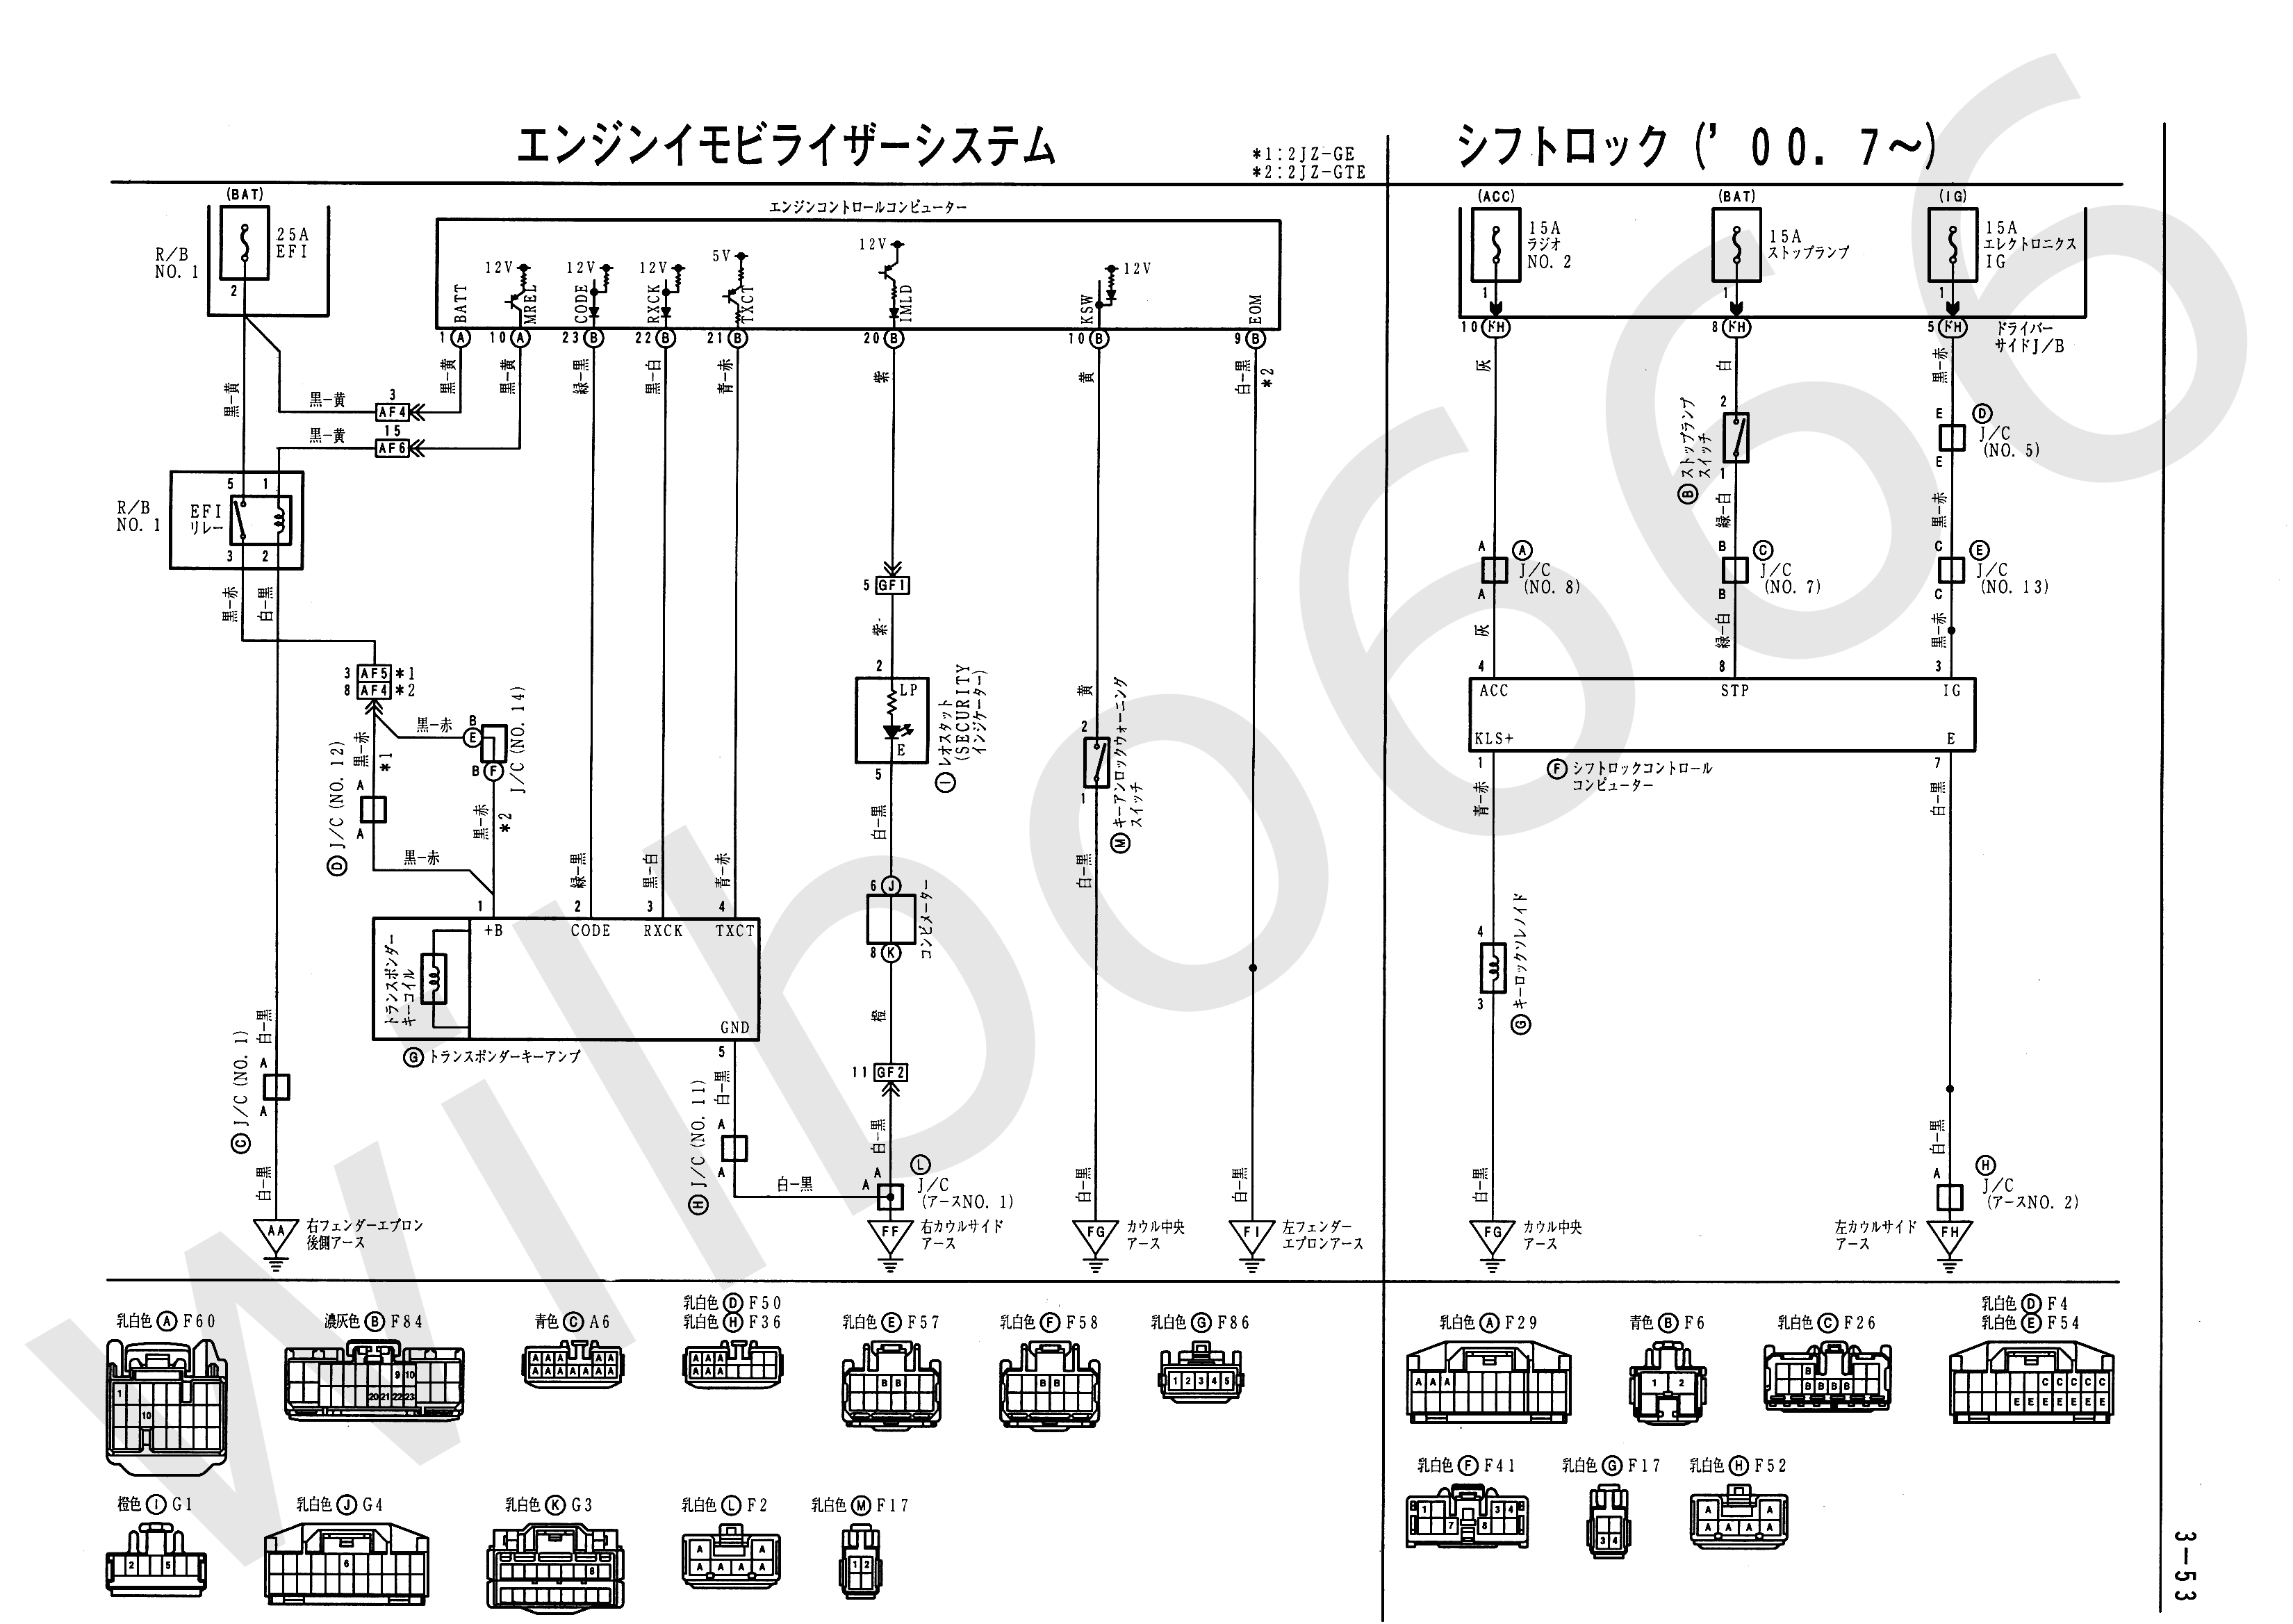 Wilbo666 2jz Gte Vvti Jzs161 Aristo Engine Wiring Regulator Diagram On Haynes Repair Manuals Diagrams